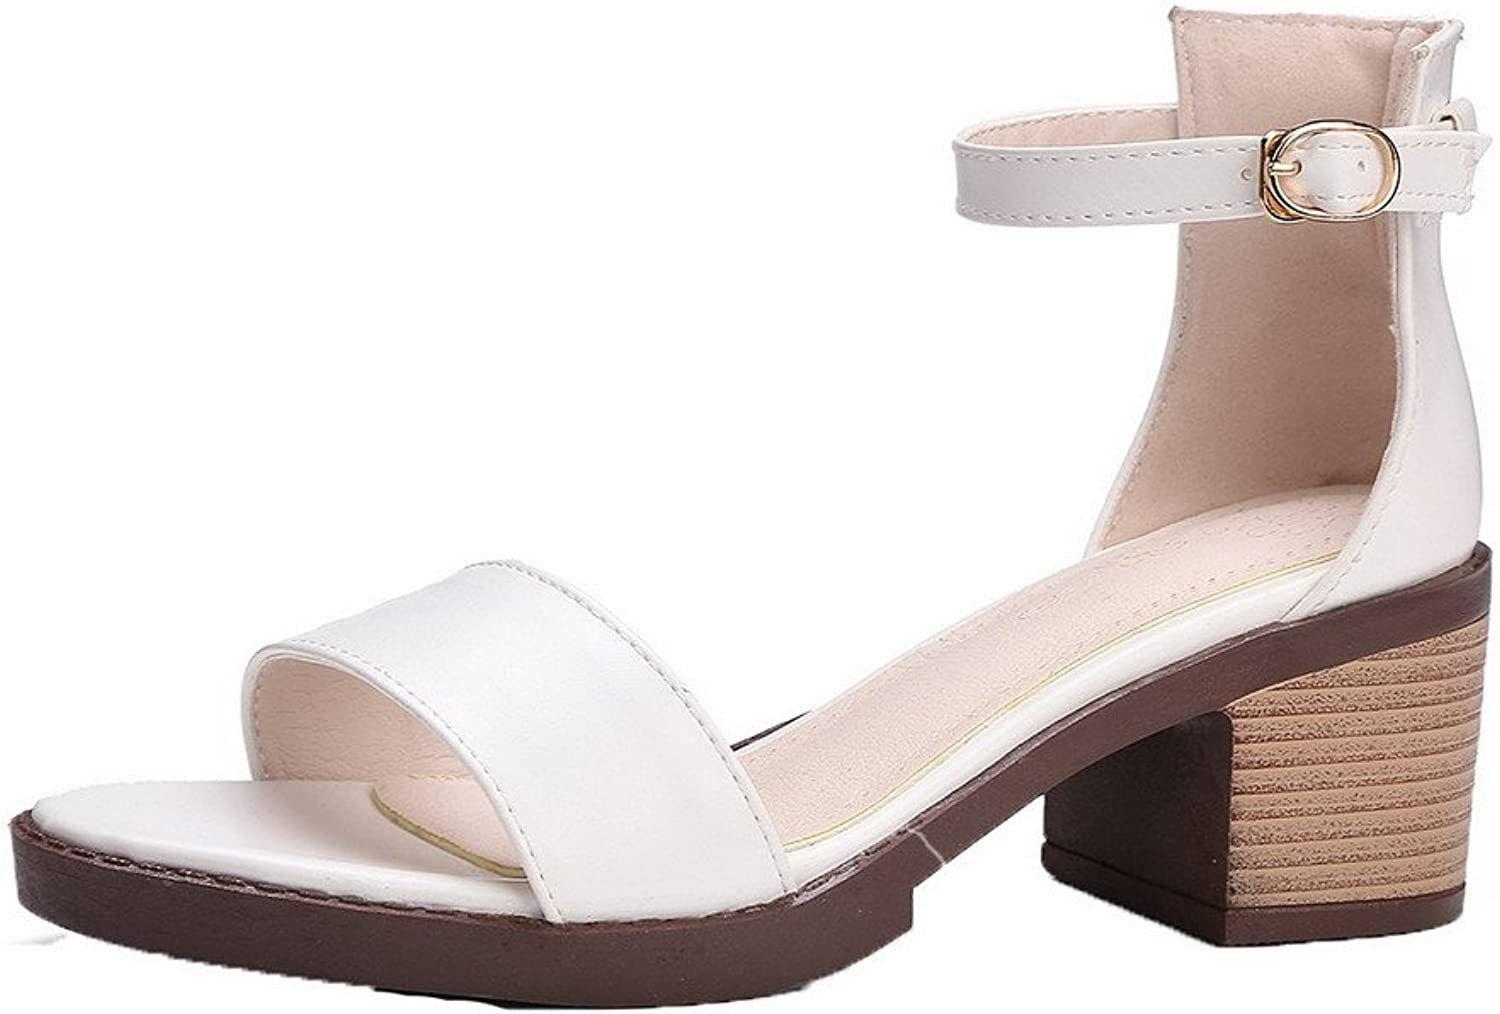 WeenFashion Women's Buckle Open Toe Kitten-Heels PU Solid Sandals, White, 33